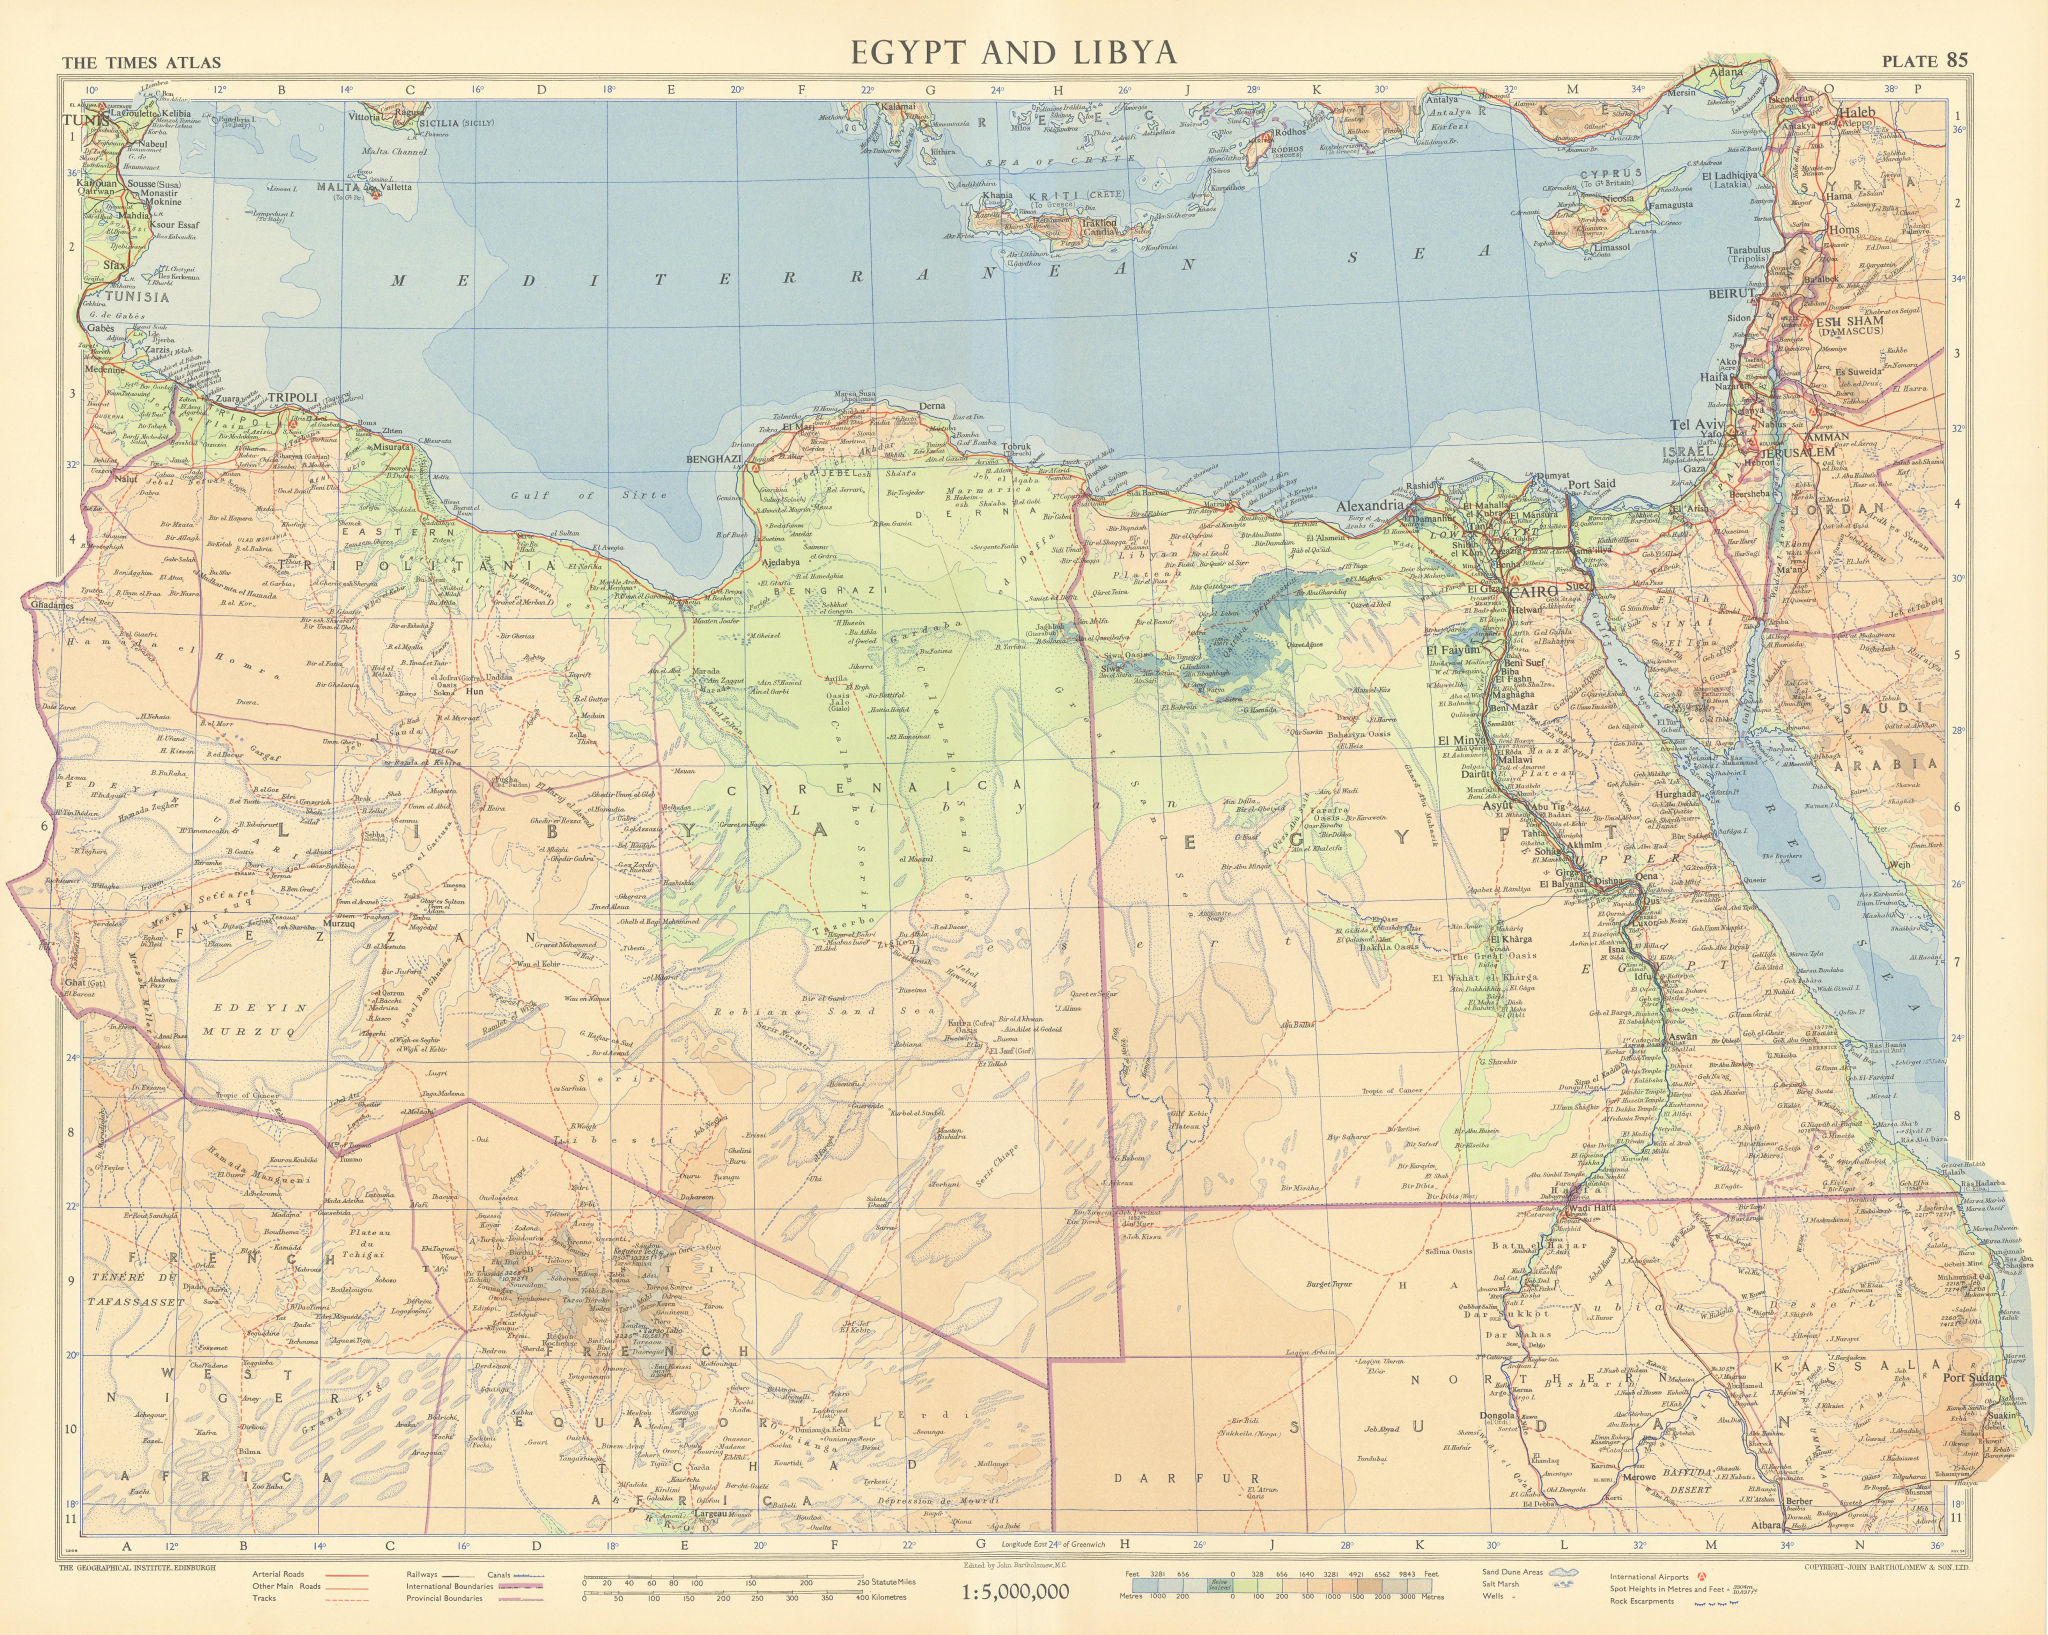 Egypt and Libya. Sand dune areas & desert tracks. North Africa. TIMES 1956 map